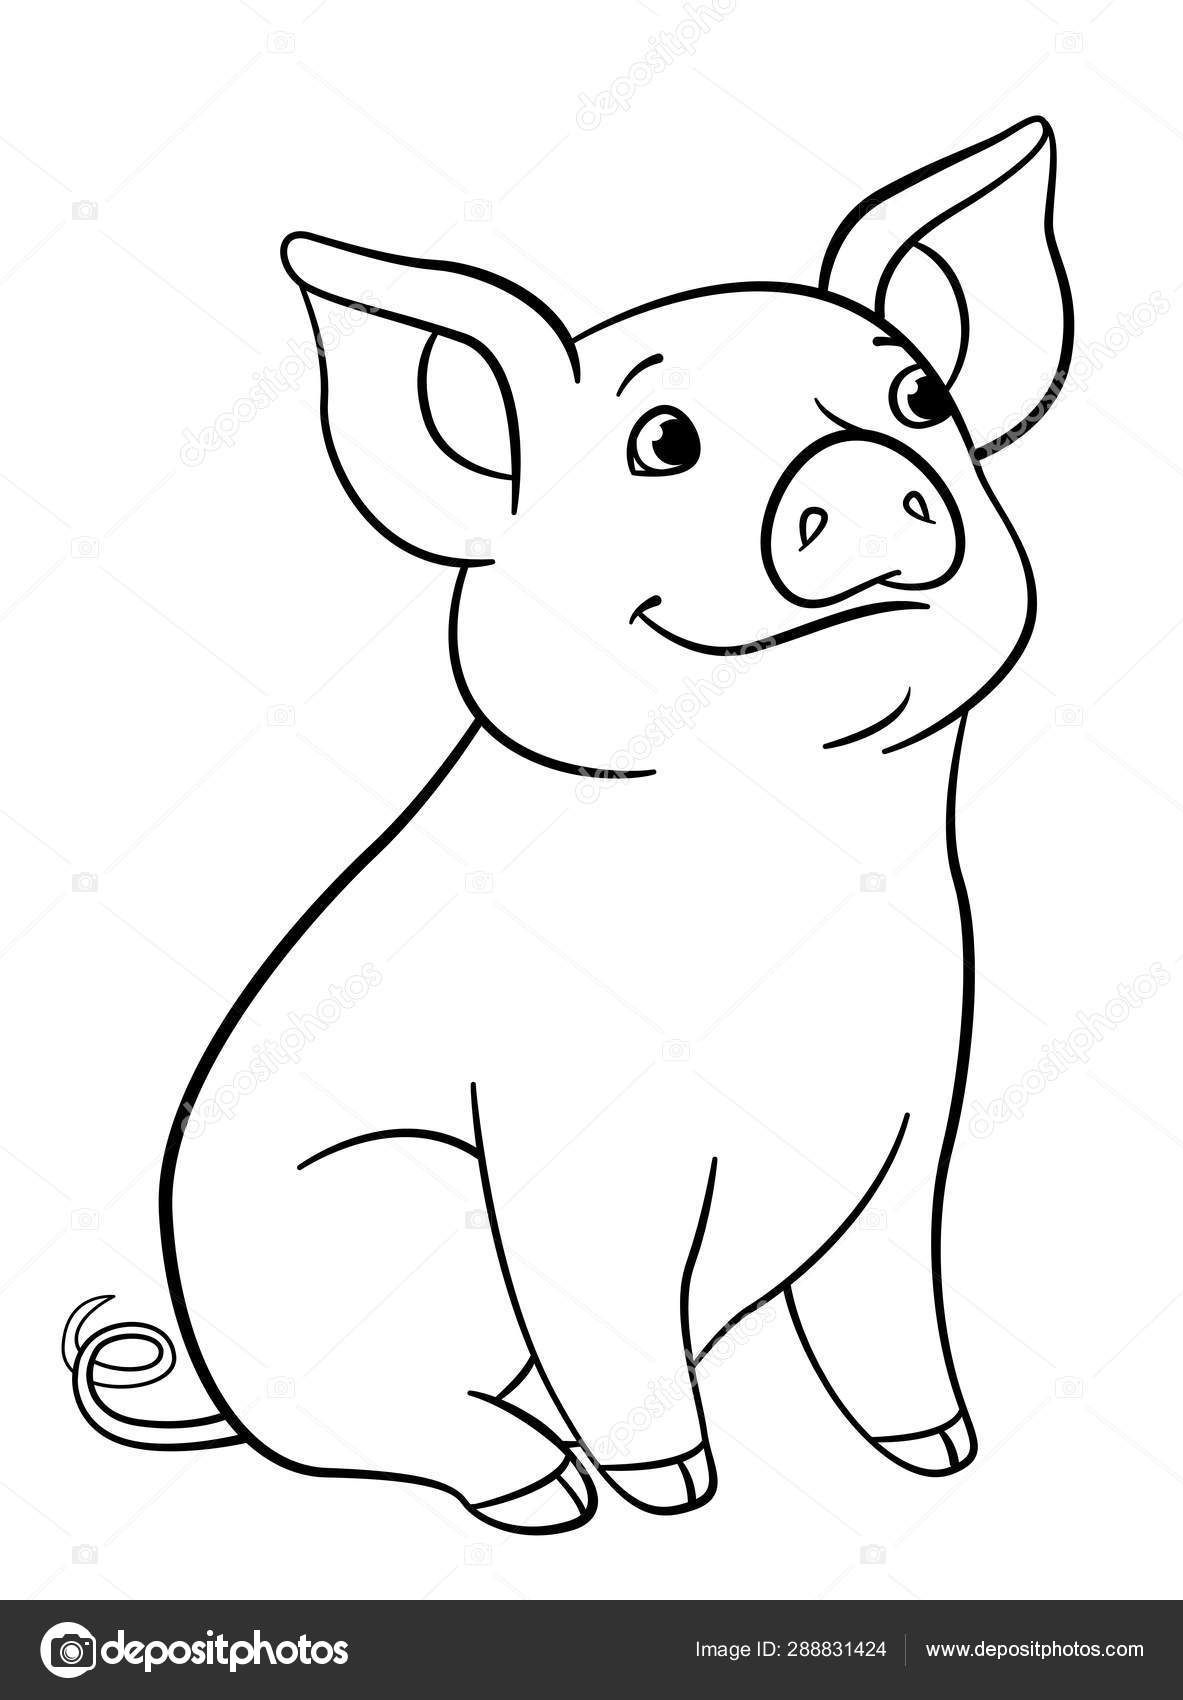 Coloring Pages Coloring Pages Little Cute Piglet Sits And Smiles Stock Pig Illustration F Elephant Coloring Page Cute Coloring Pages Toy Story Coloring Pages